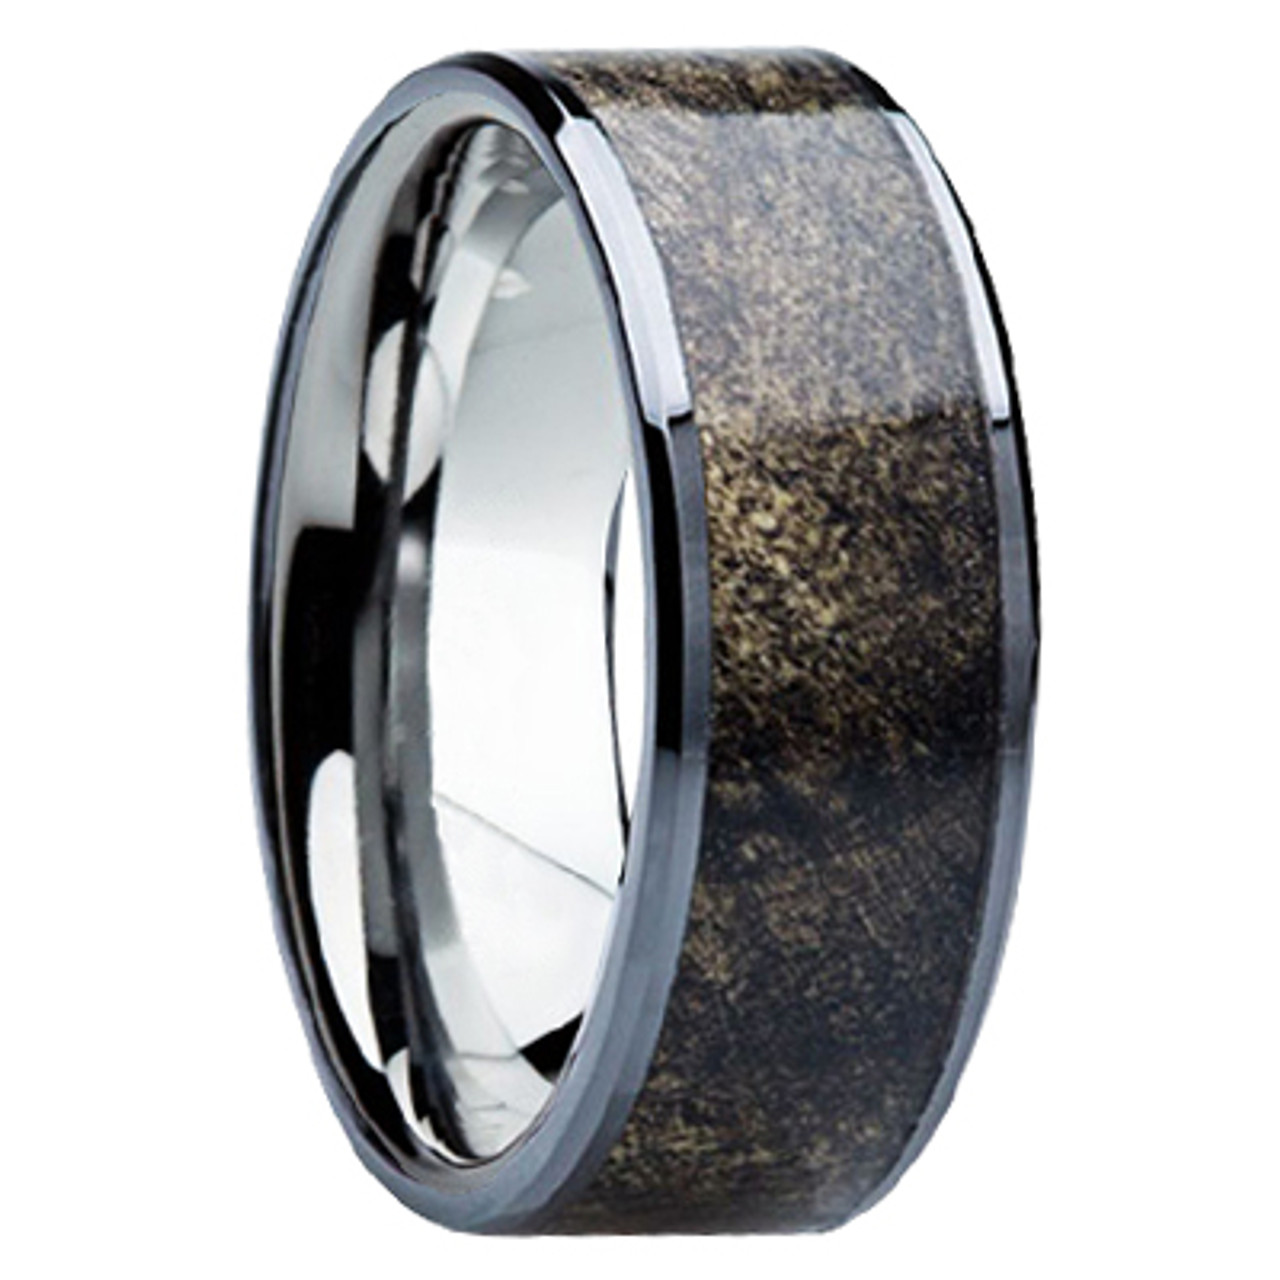 8mm Tungsten Carbide with Buckeye Wood Inlay B115M at MWB